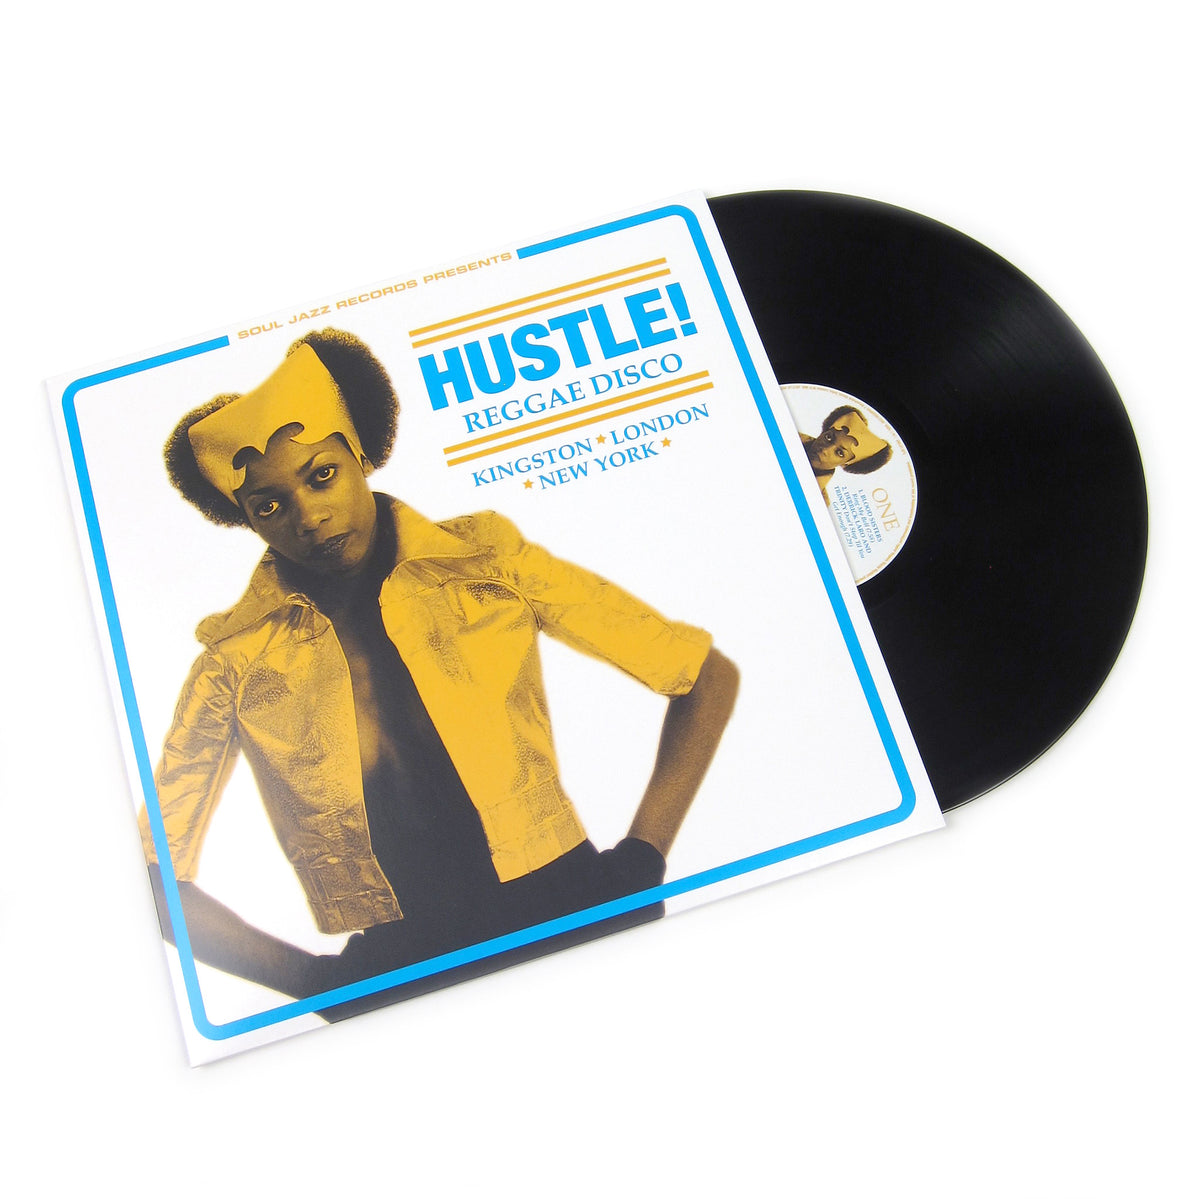 Soul Jazz Records: Hustle! Reggae Disco Vinyl 3LP